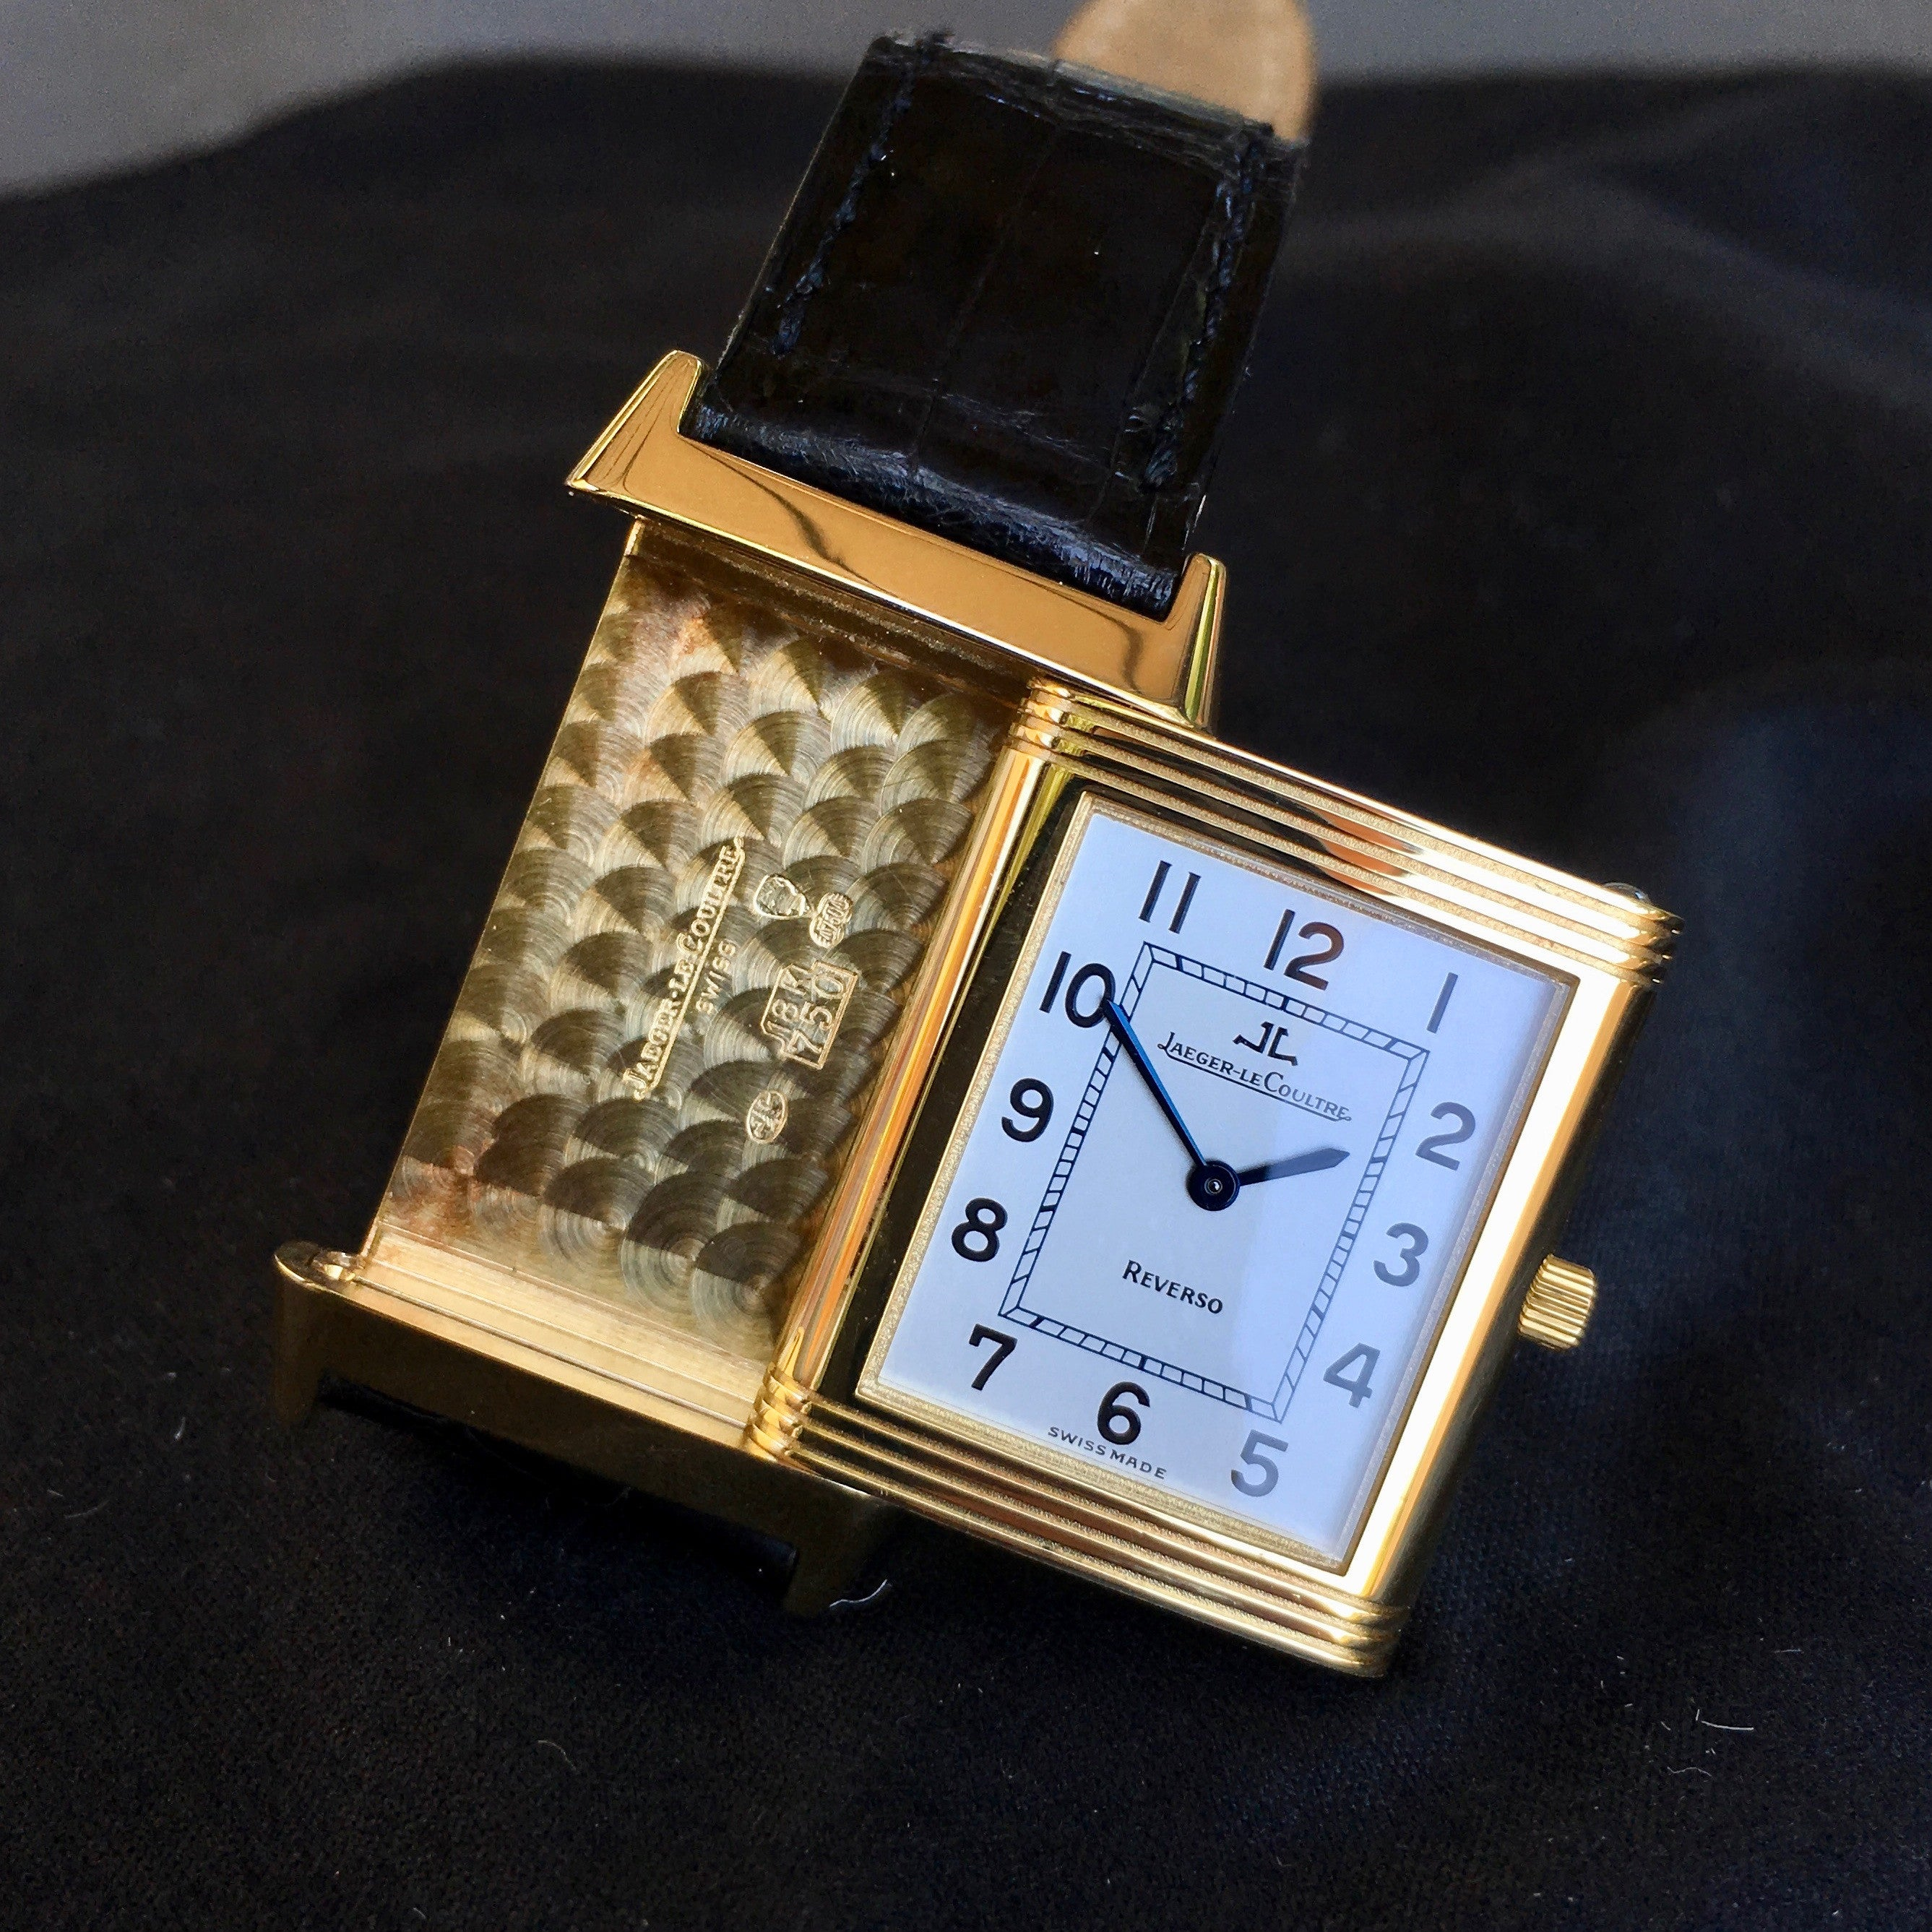 Jaeger LeCoultre Reverso 18K Yellow Gold Manual Wind Silver Leather Wristwatch - Hashtag Watch Company